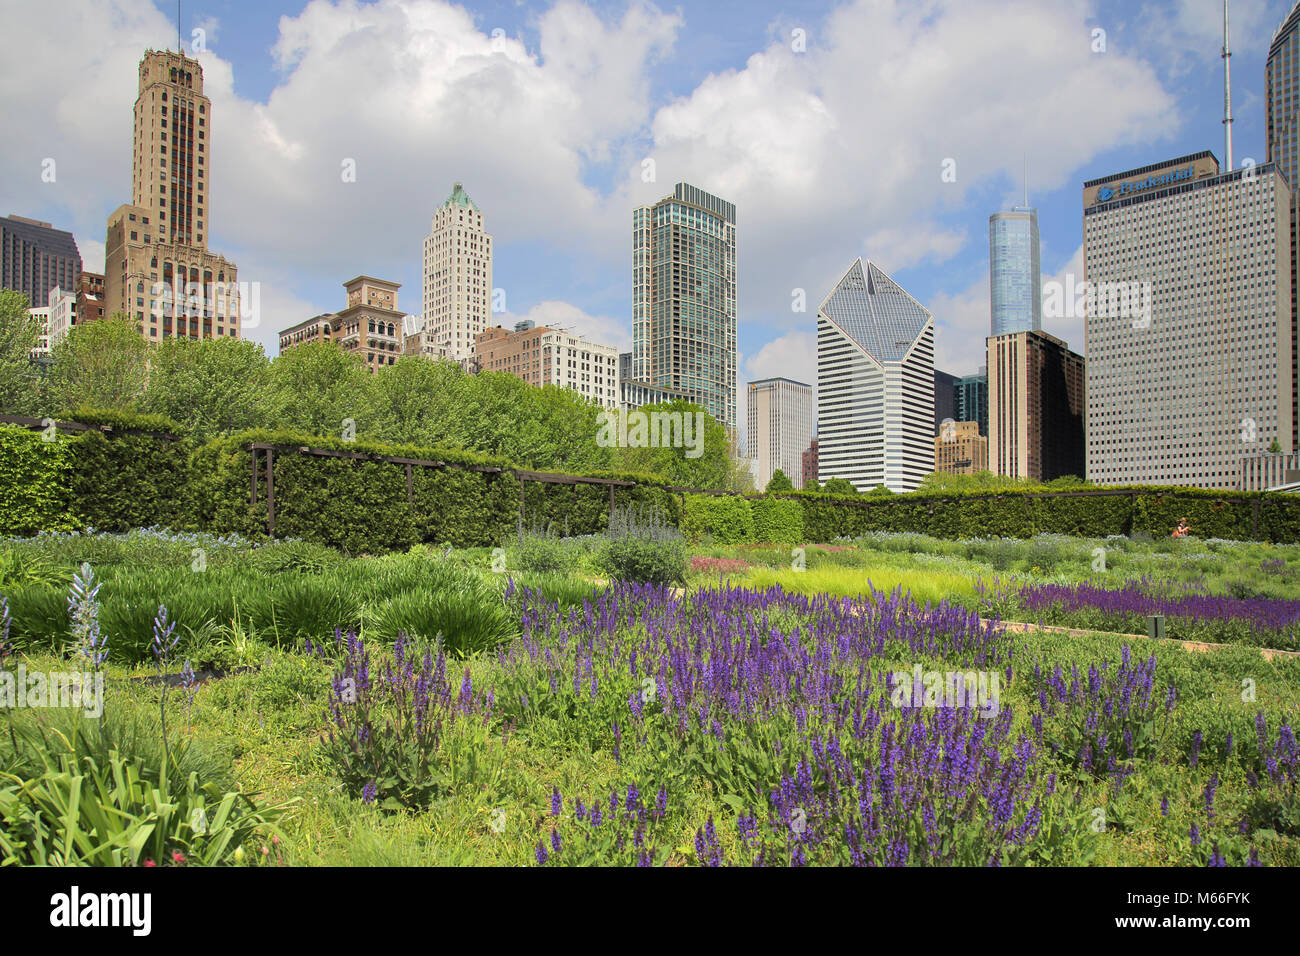 the maggie daley park chicago Illinois Stock Photo